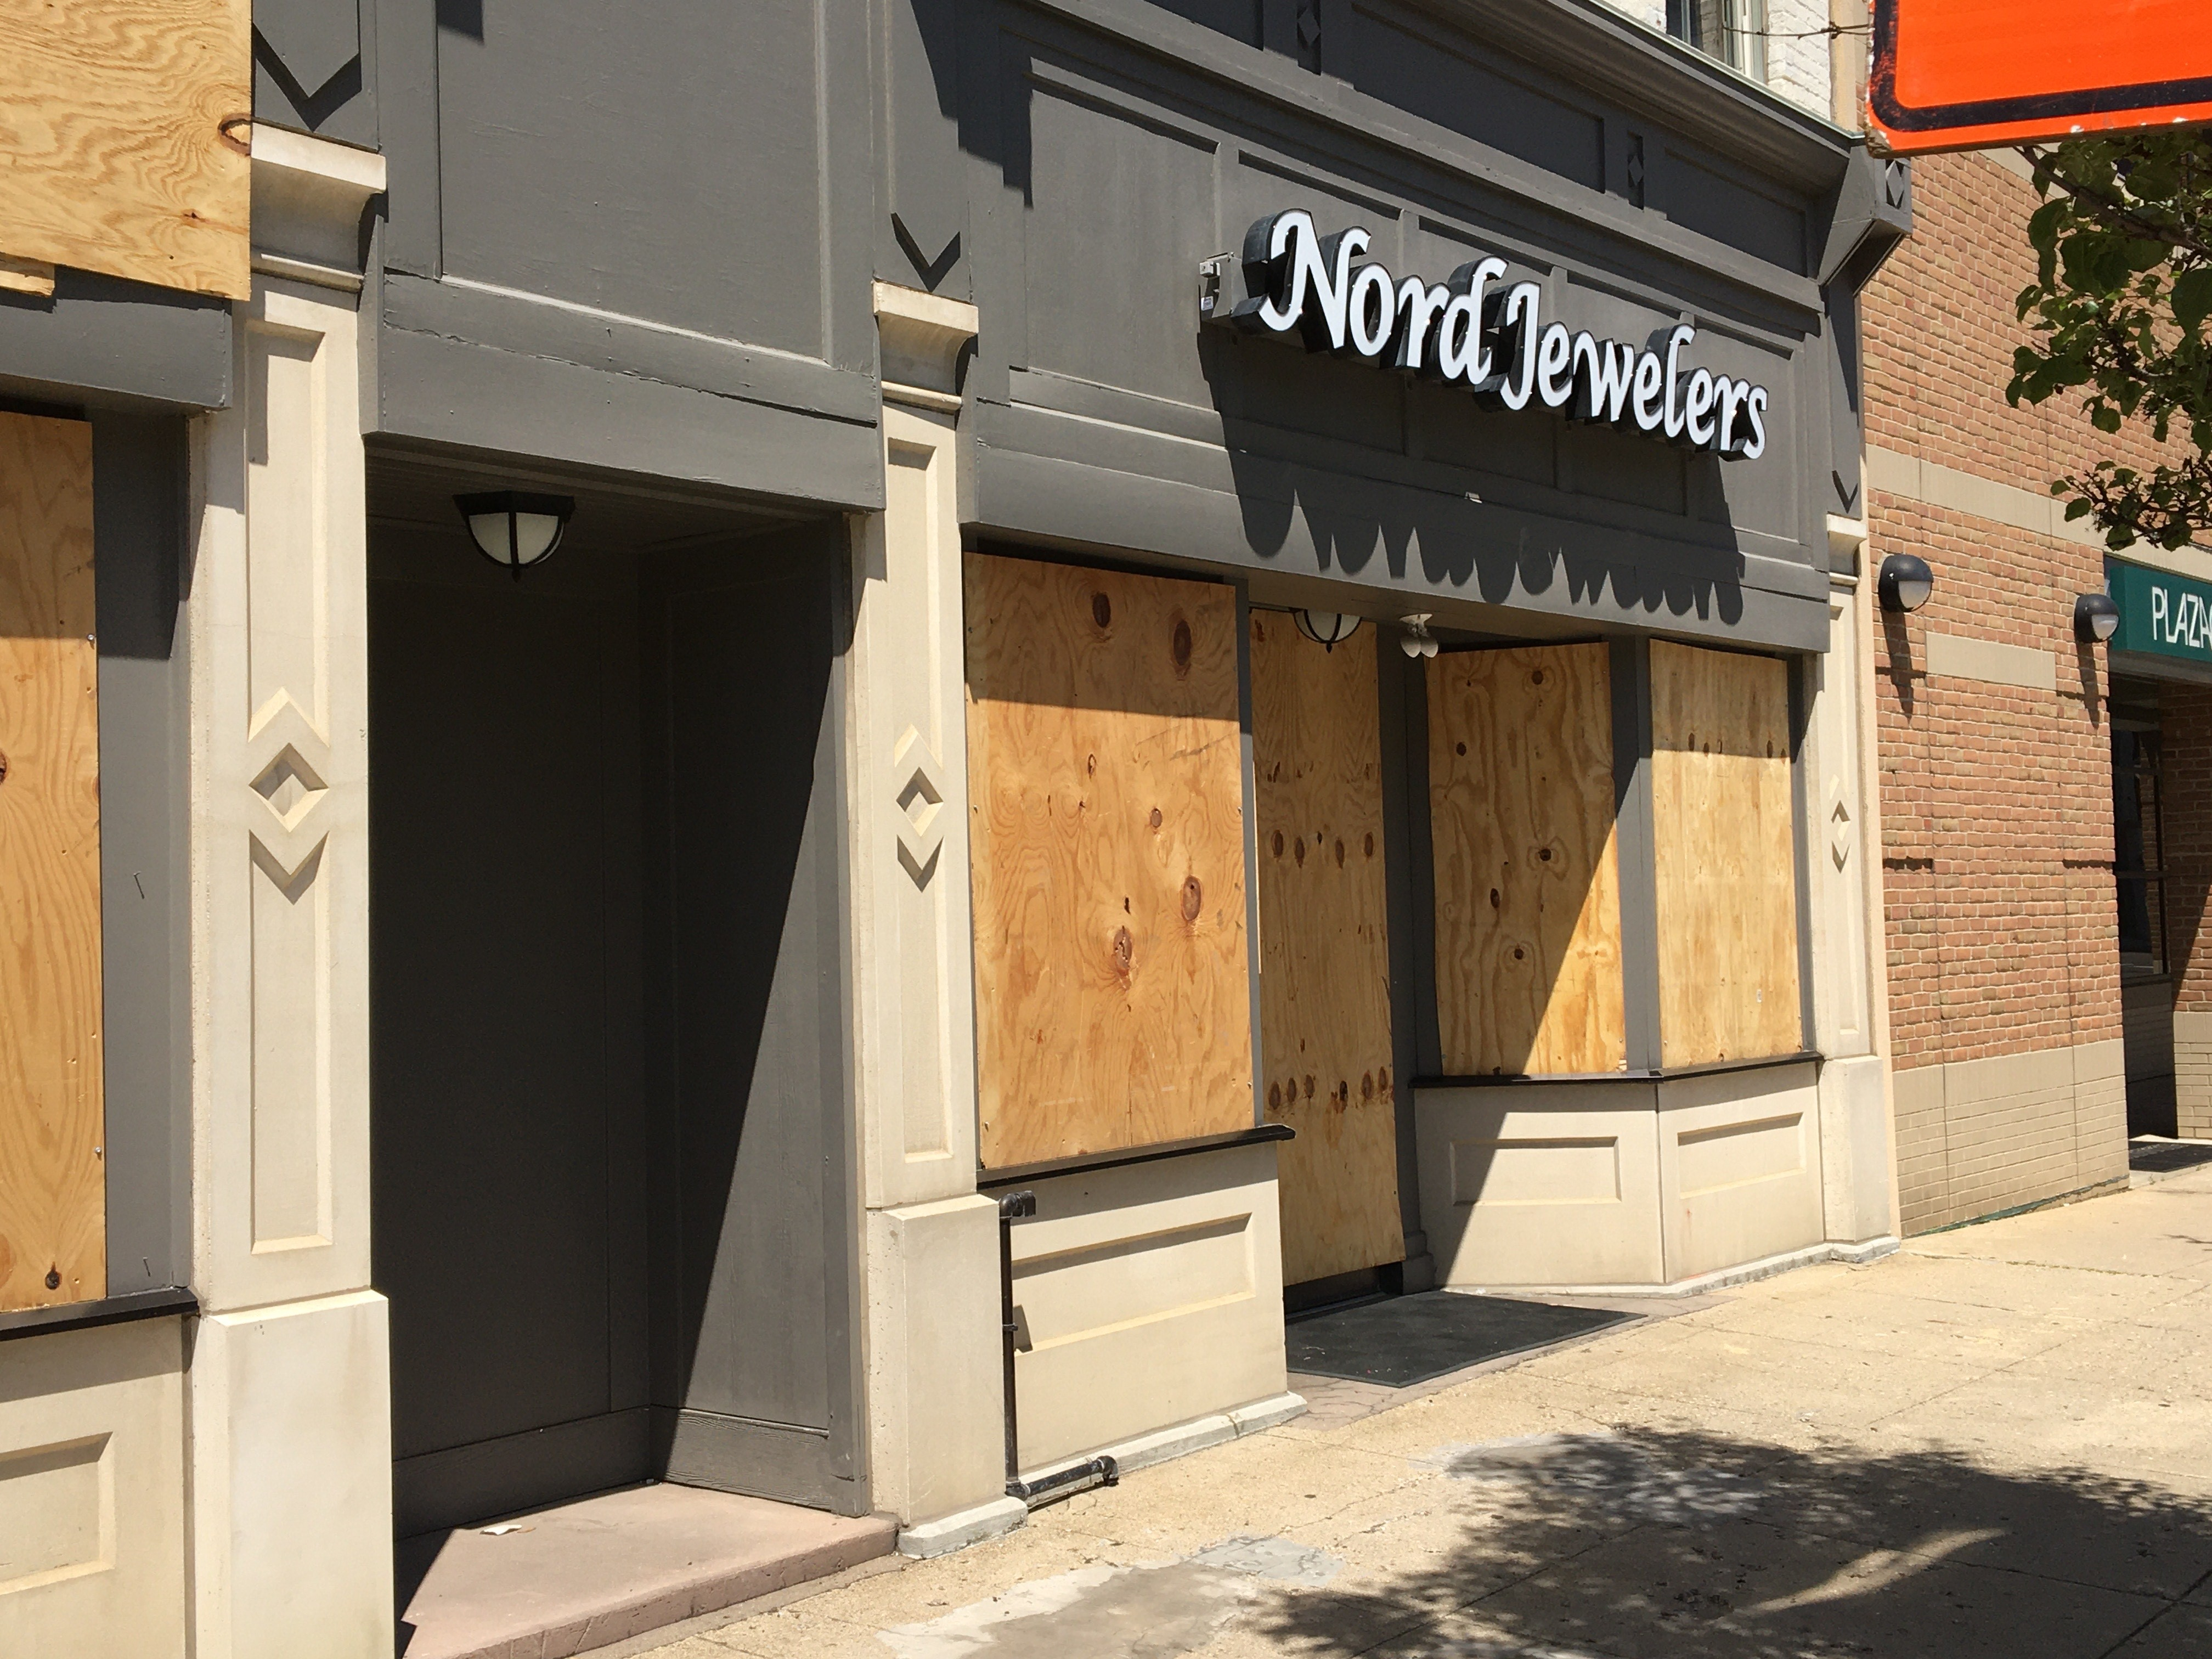 Owners and managers of Nord Jewelers decided to board up the shop on West Michigan Avenue in downtown Kalamazoo after the city announced a curfew starting at 7 p.m. (WWMT/Manny Revilla)